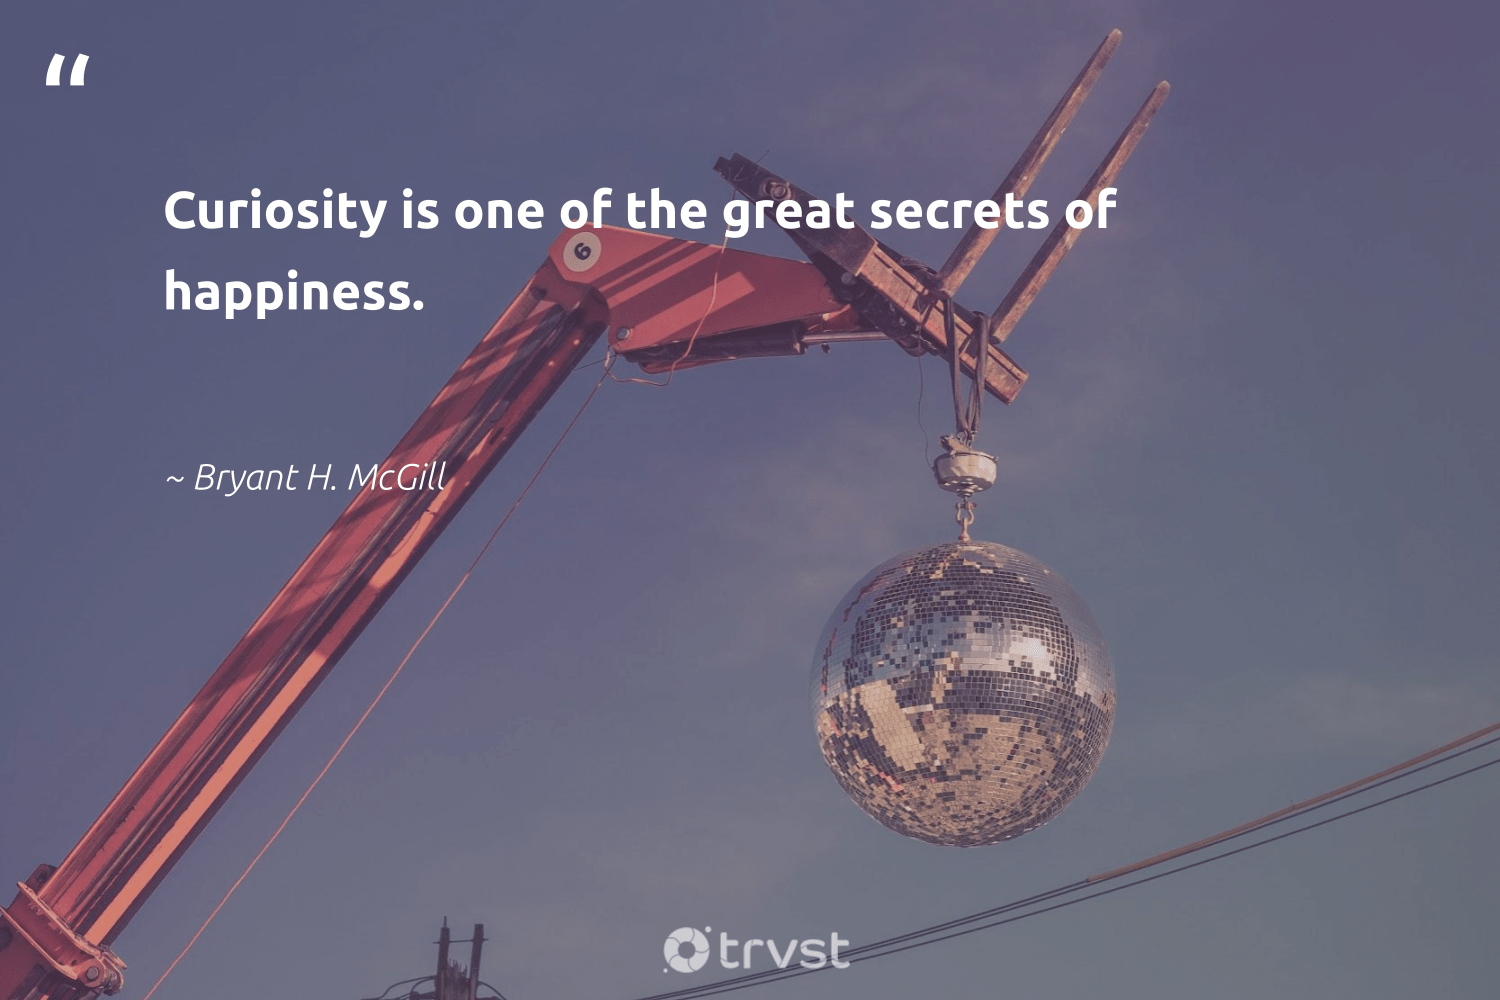 """""""Curiosity is one of the great secrets of happiness.""""  - Bryant H. McGill #trvst #quotes #happiness #health #bethechange #nevergiveup #dogood #begreat #gogreen #changemakers #beinspired #mindset"""